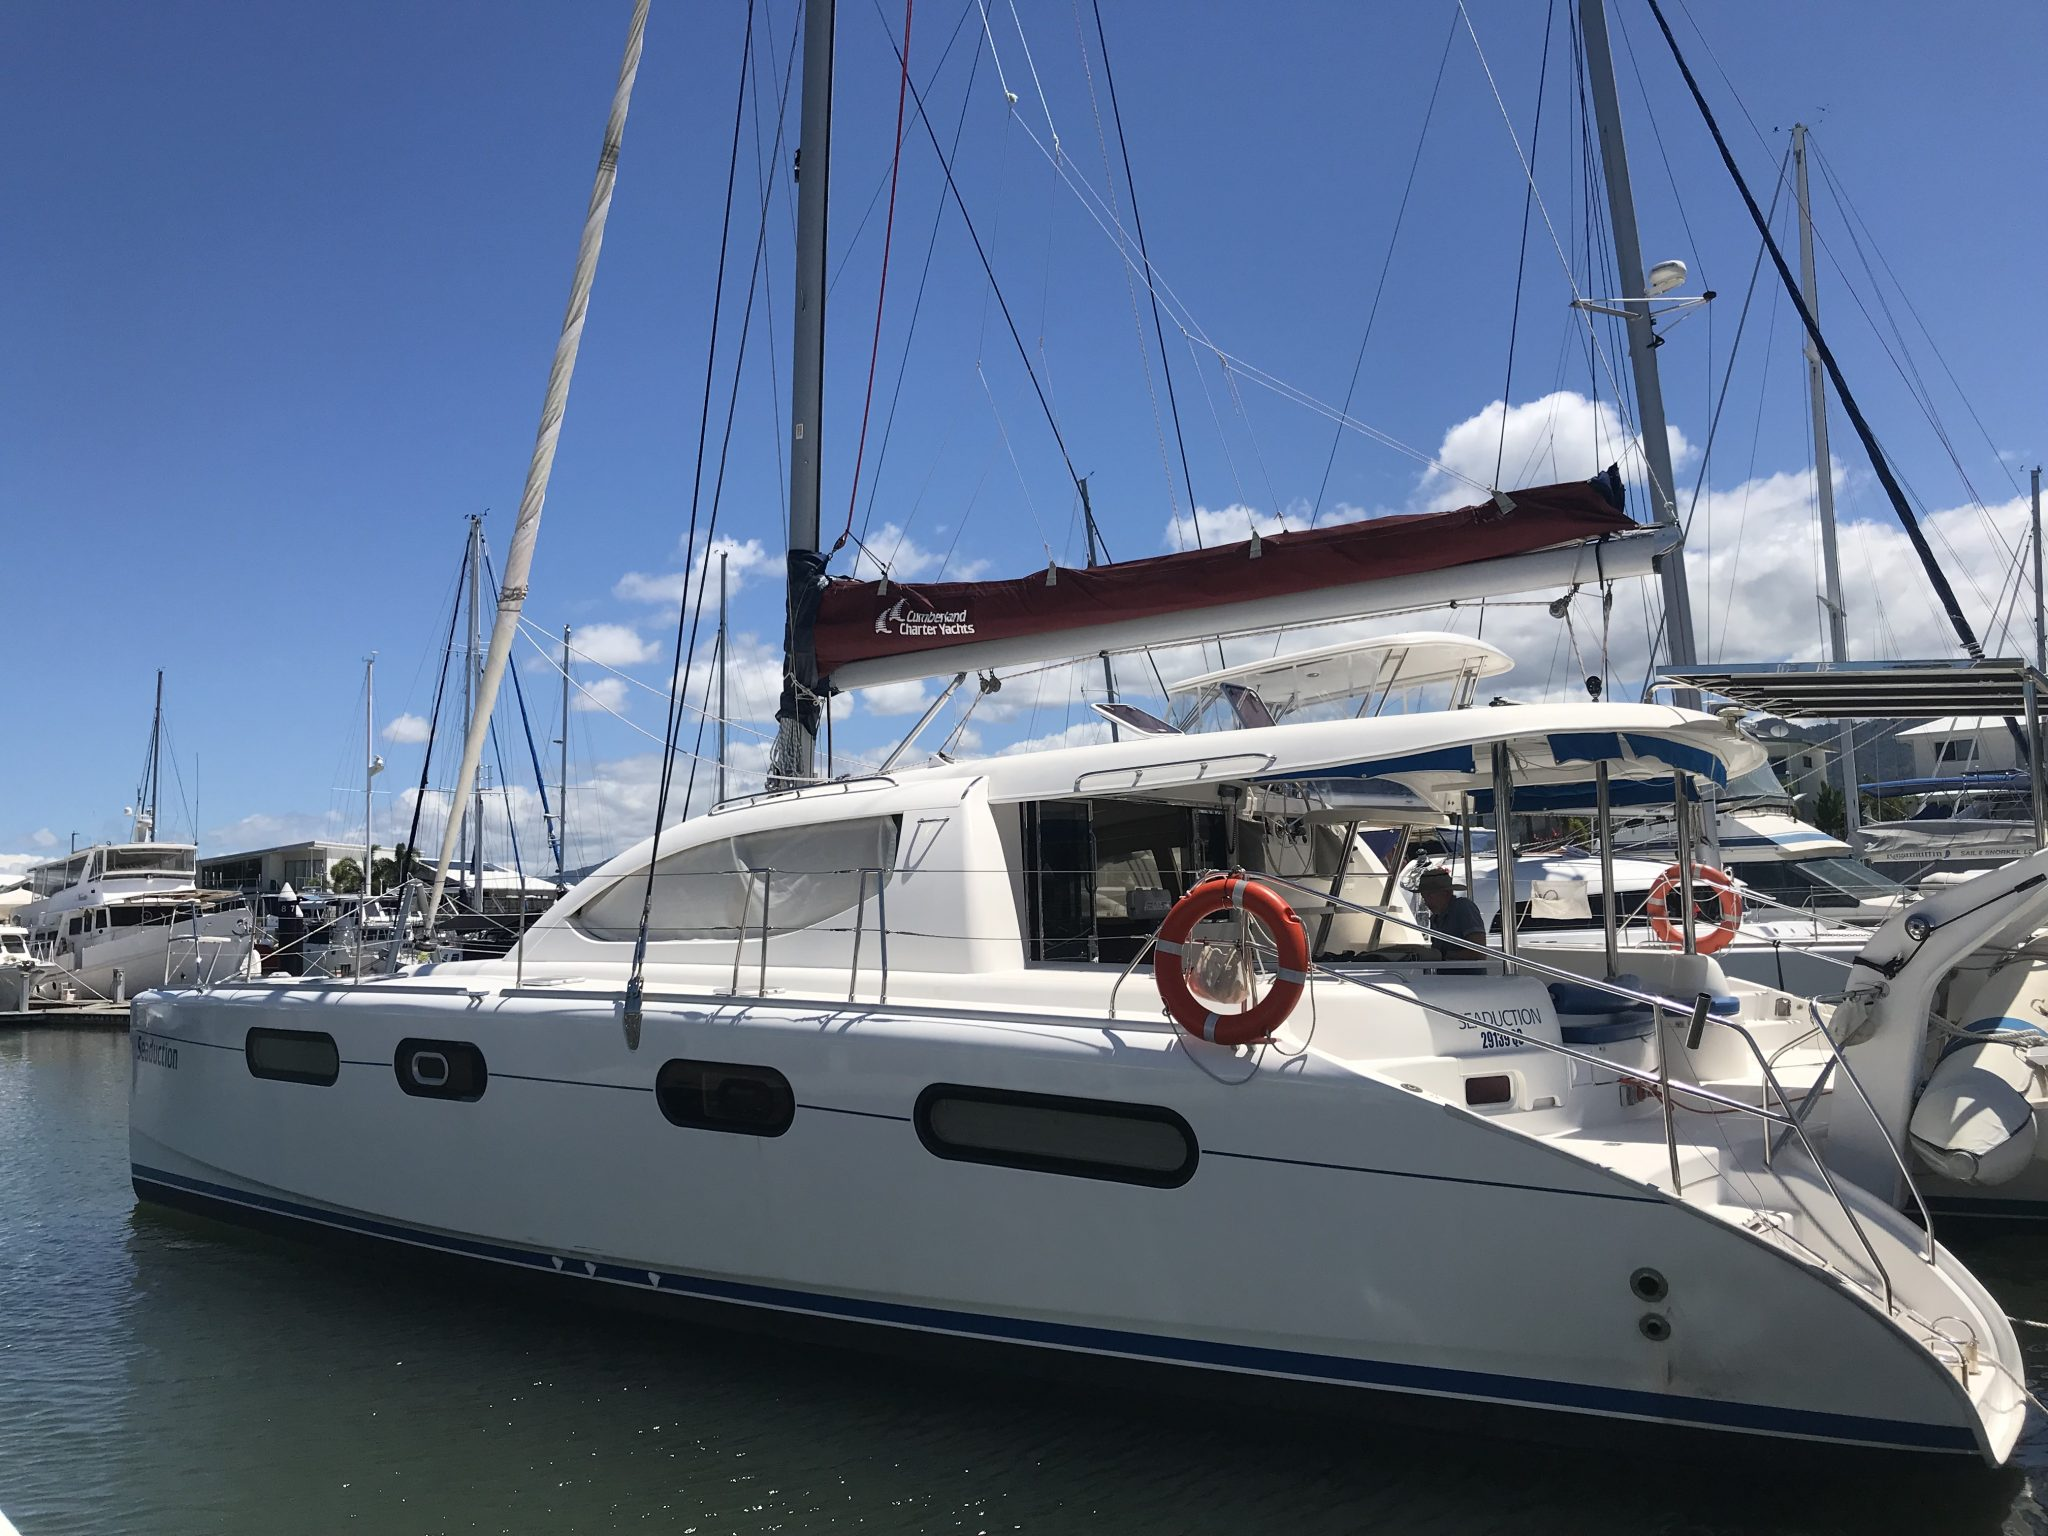 IMG_1356 2 copy 2 - Multihull Solutions